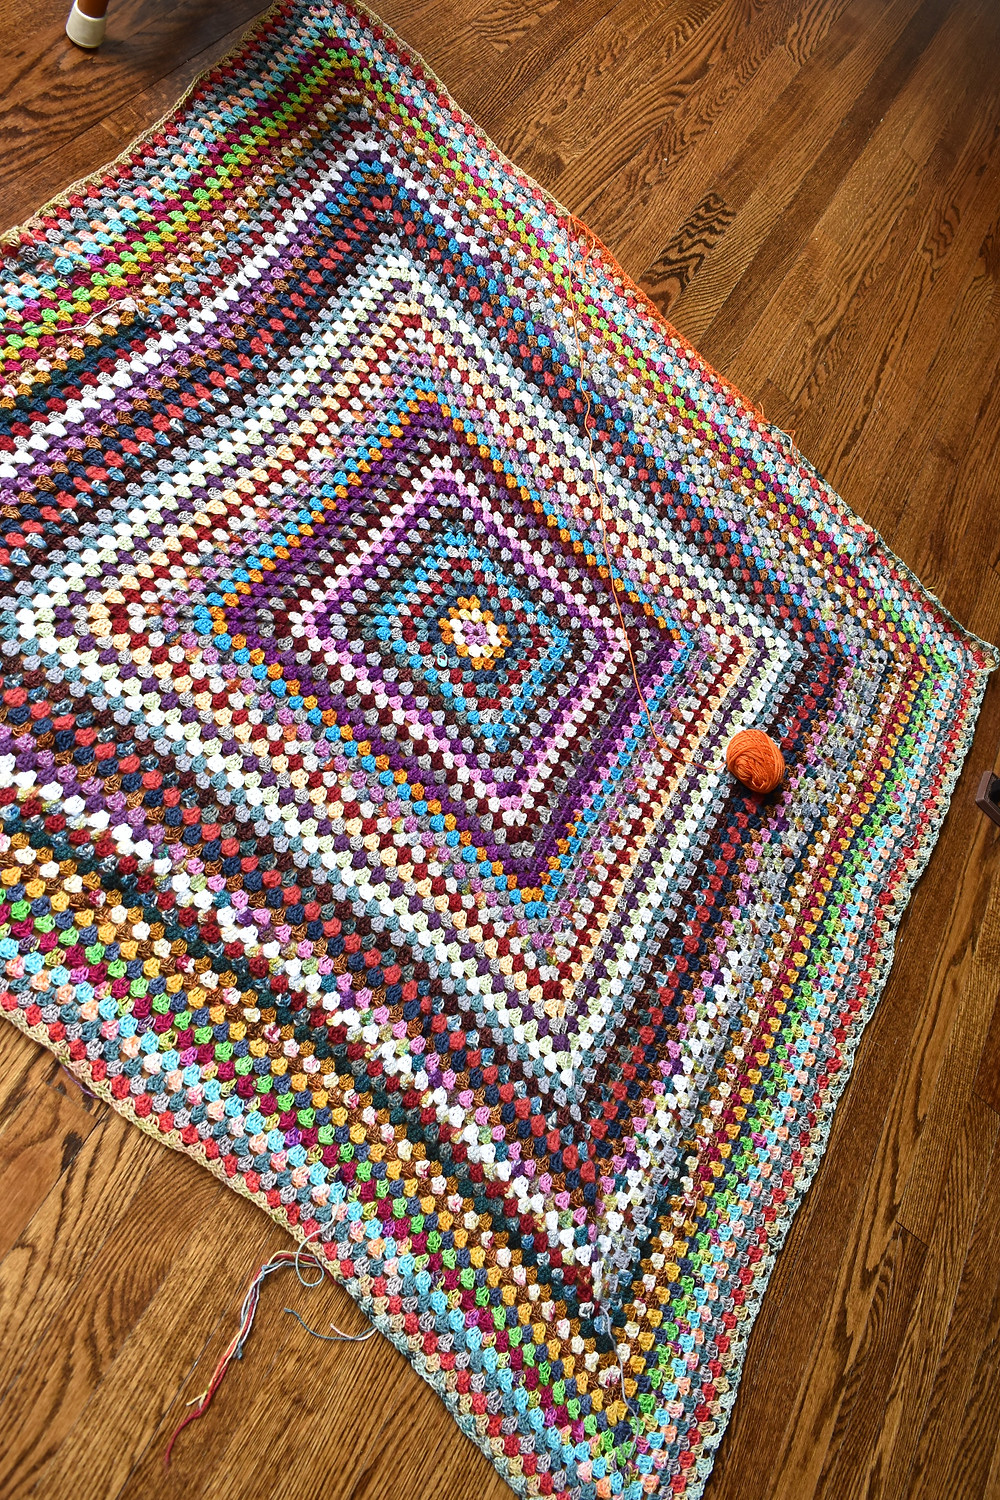 Multi colored Granny Square crocheted afghan on oak floor